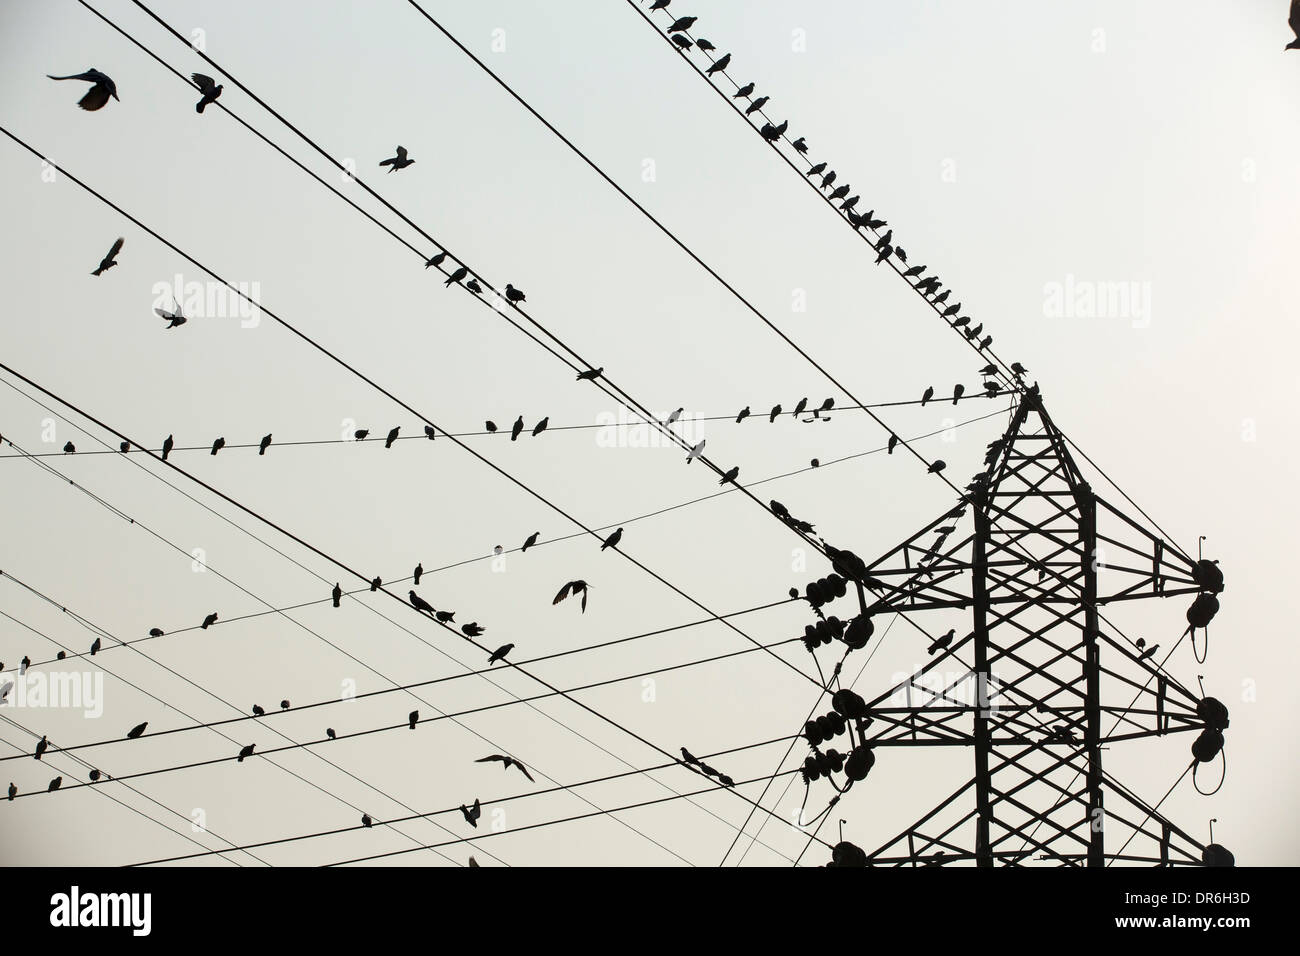 Electric Wire India Stock Photos & Electric Wire India Stock Images ...